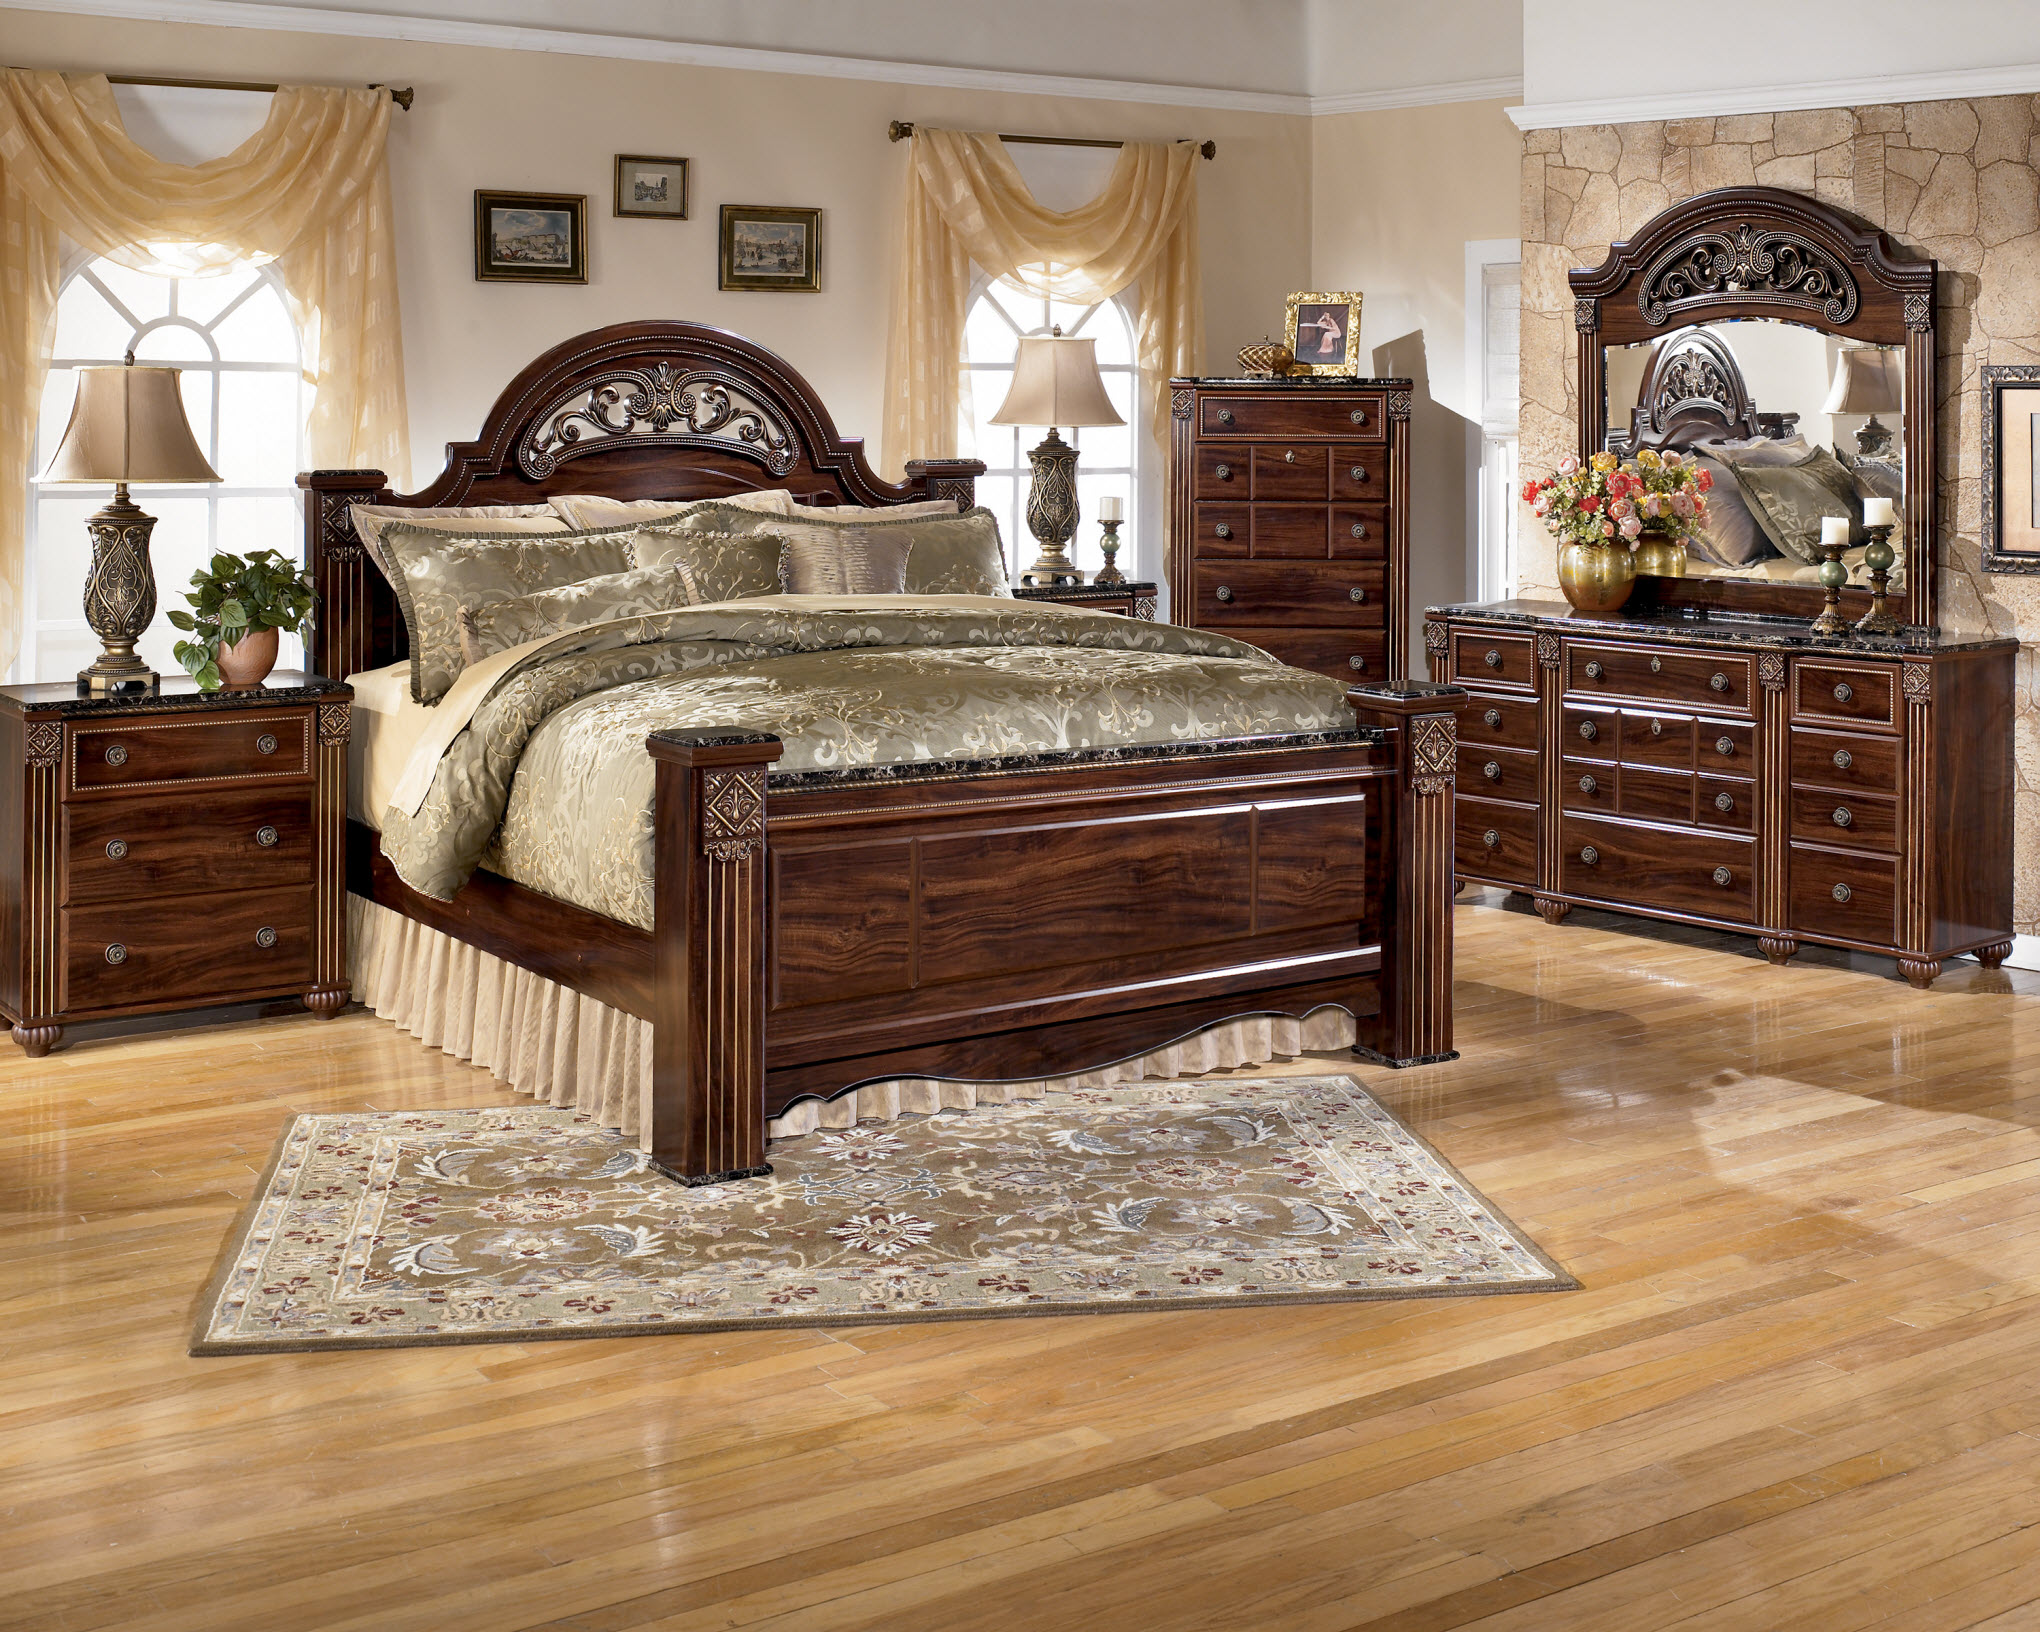 Ashley B347 Bedroom Set